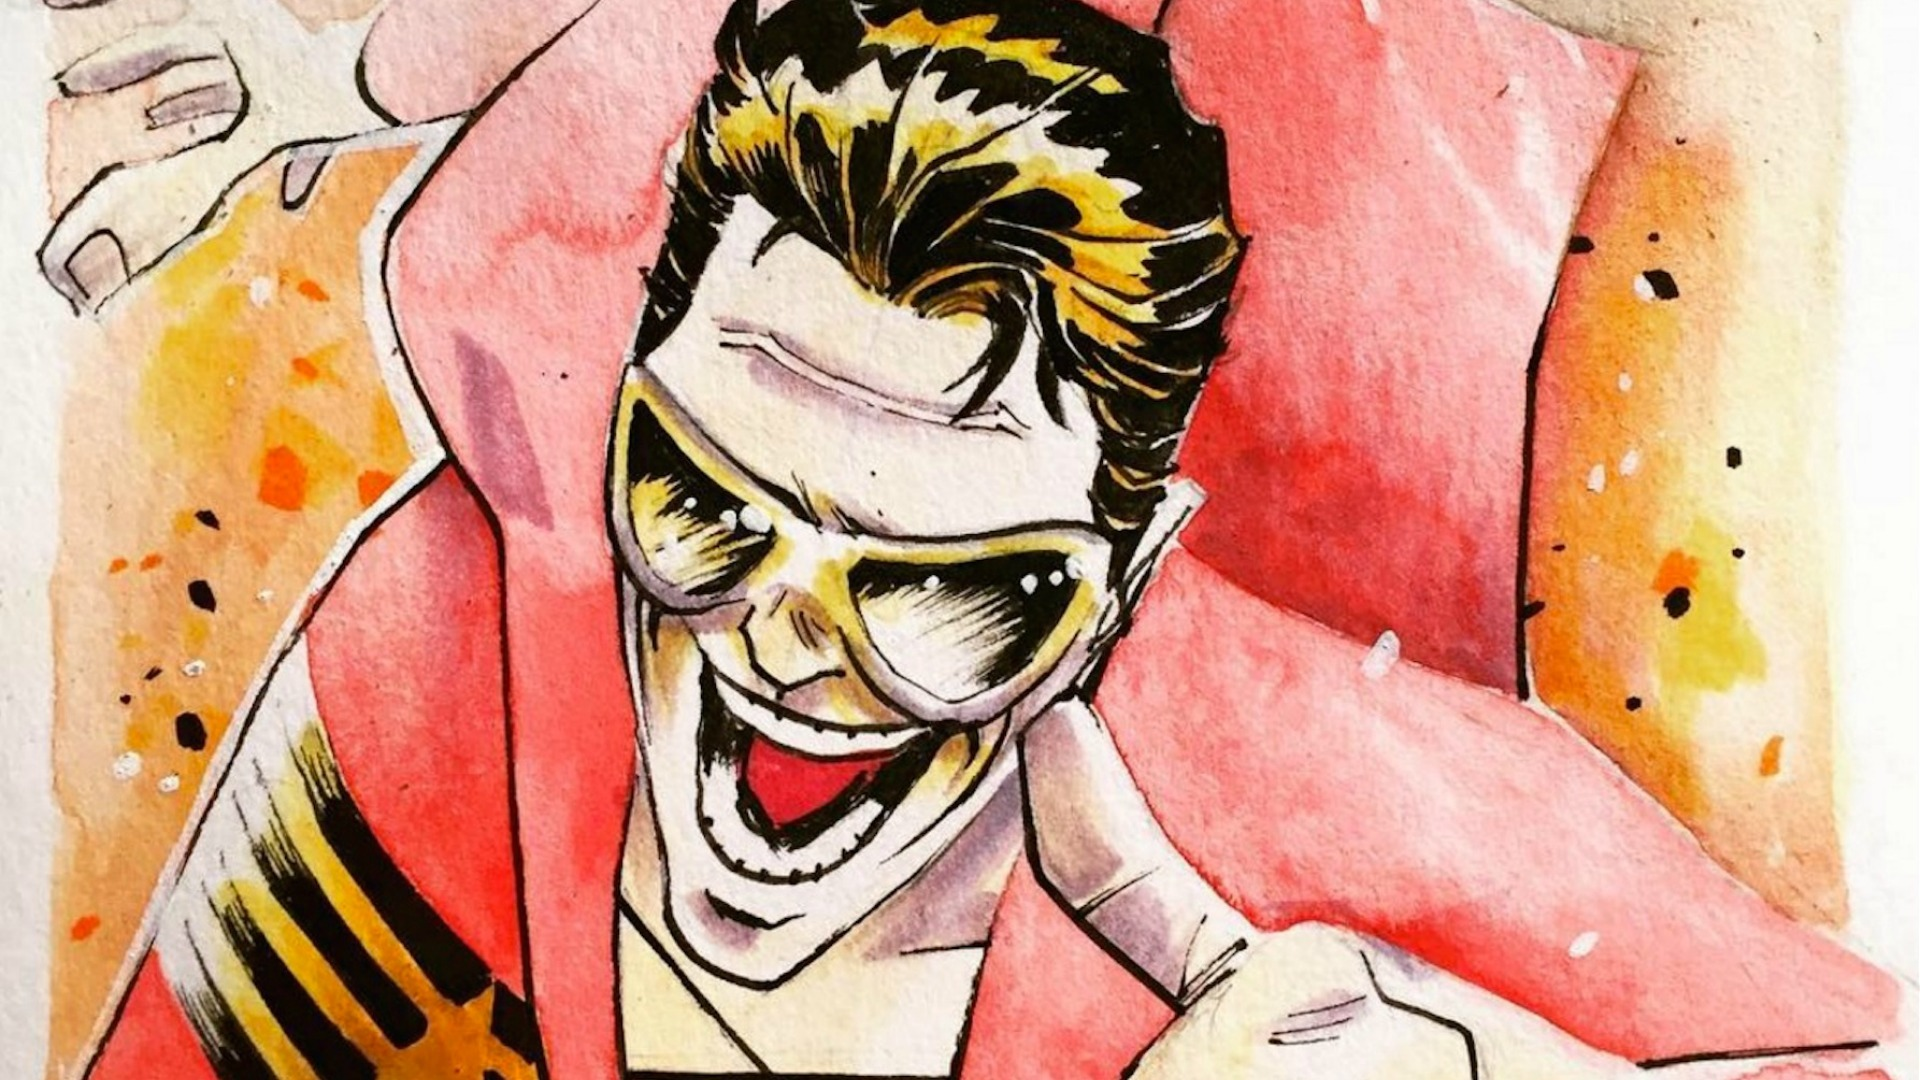 Awesome Art Picks Supergirl Wolverine Plastic Man and More 1920x1080